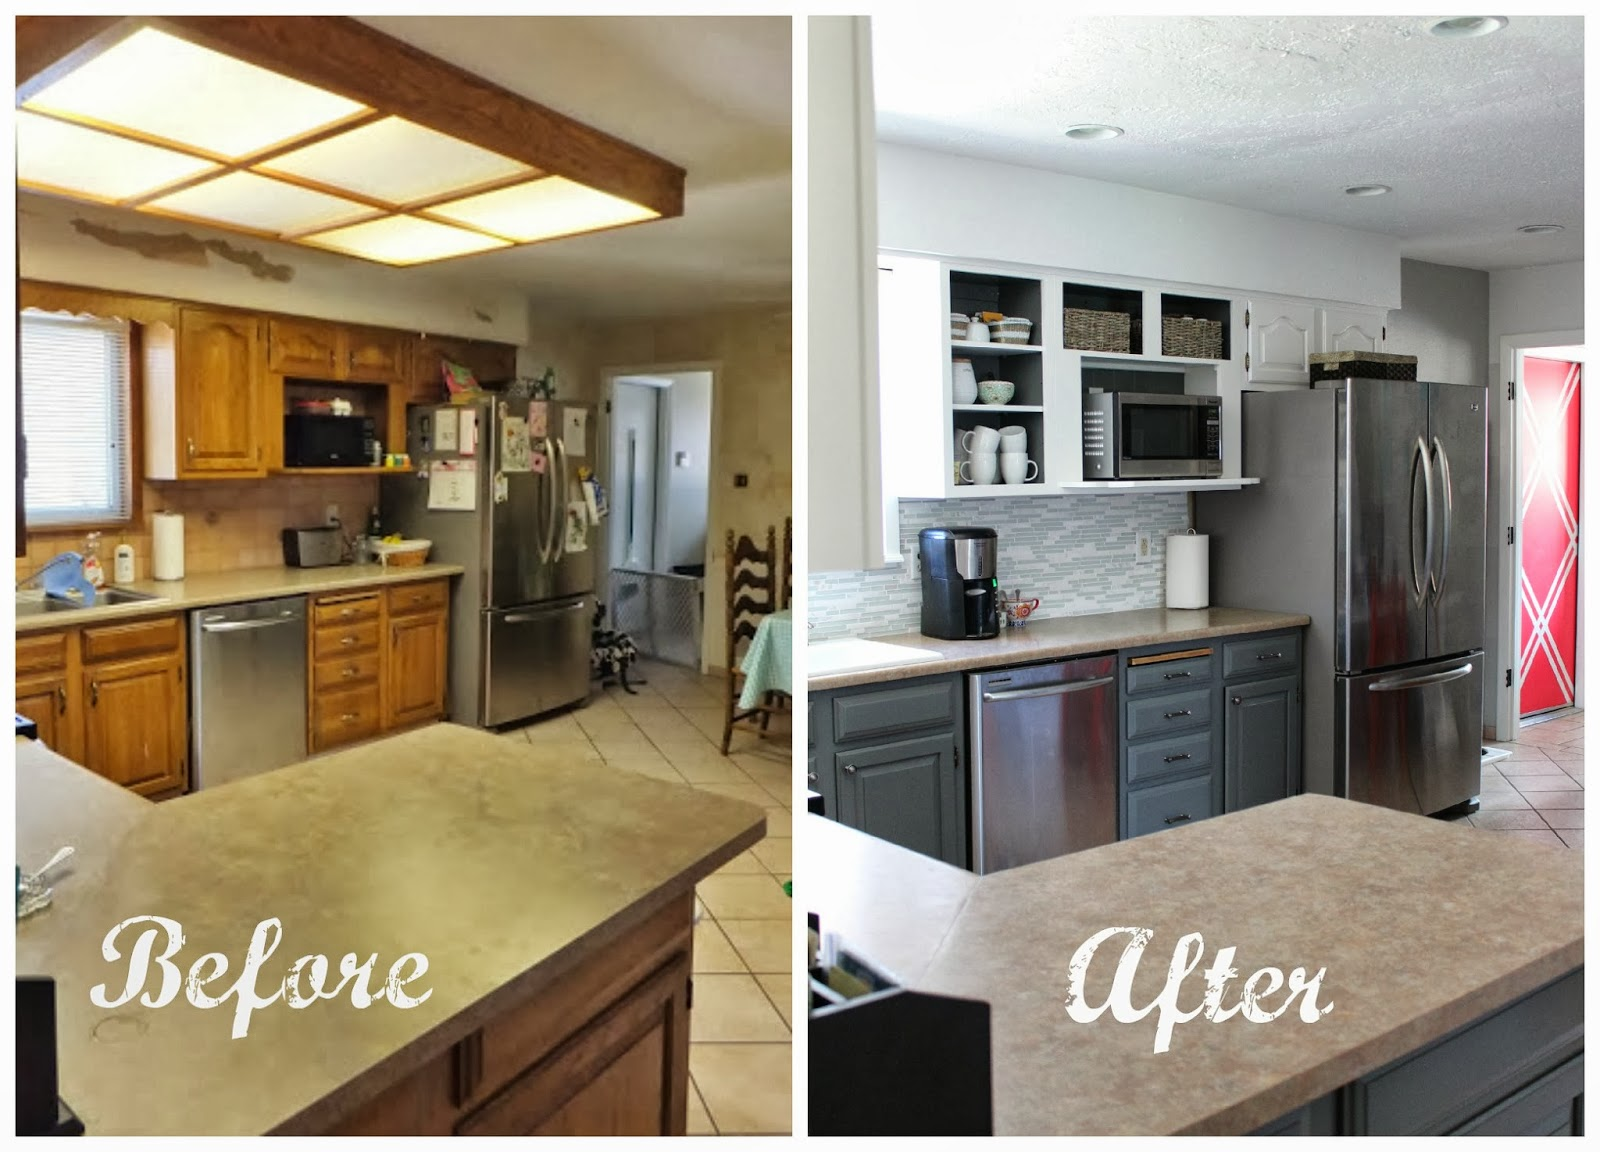 Kitchen Makeovers On A Budget Before And After Adorable Remodelaholic  Grey And White Kitchen Makeover Design Inspiration